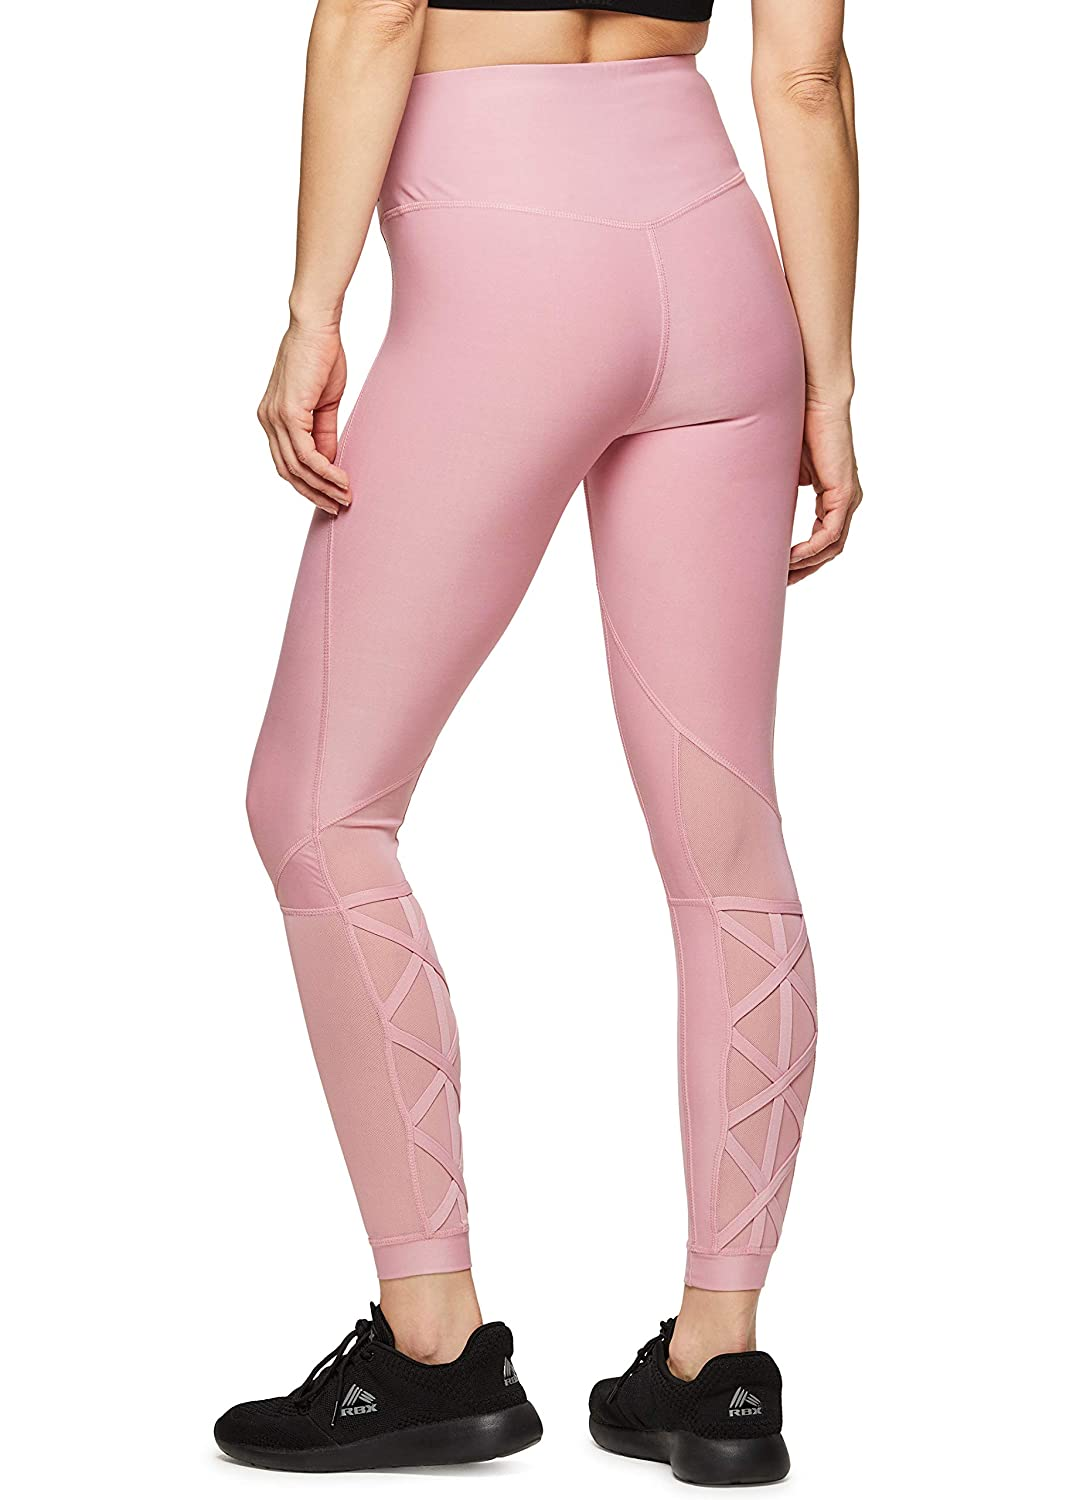 Cage19 Pink RBX Active Women's Workout Yoga 7 8 Ankle Legging with Side Detail